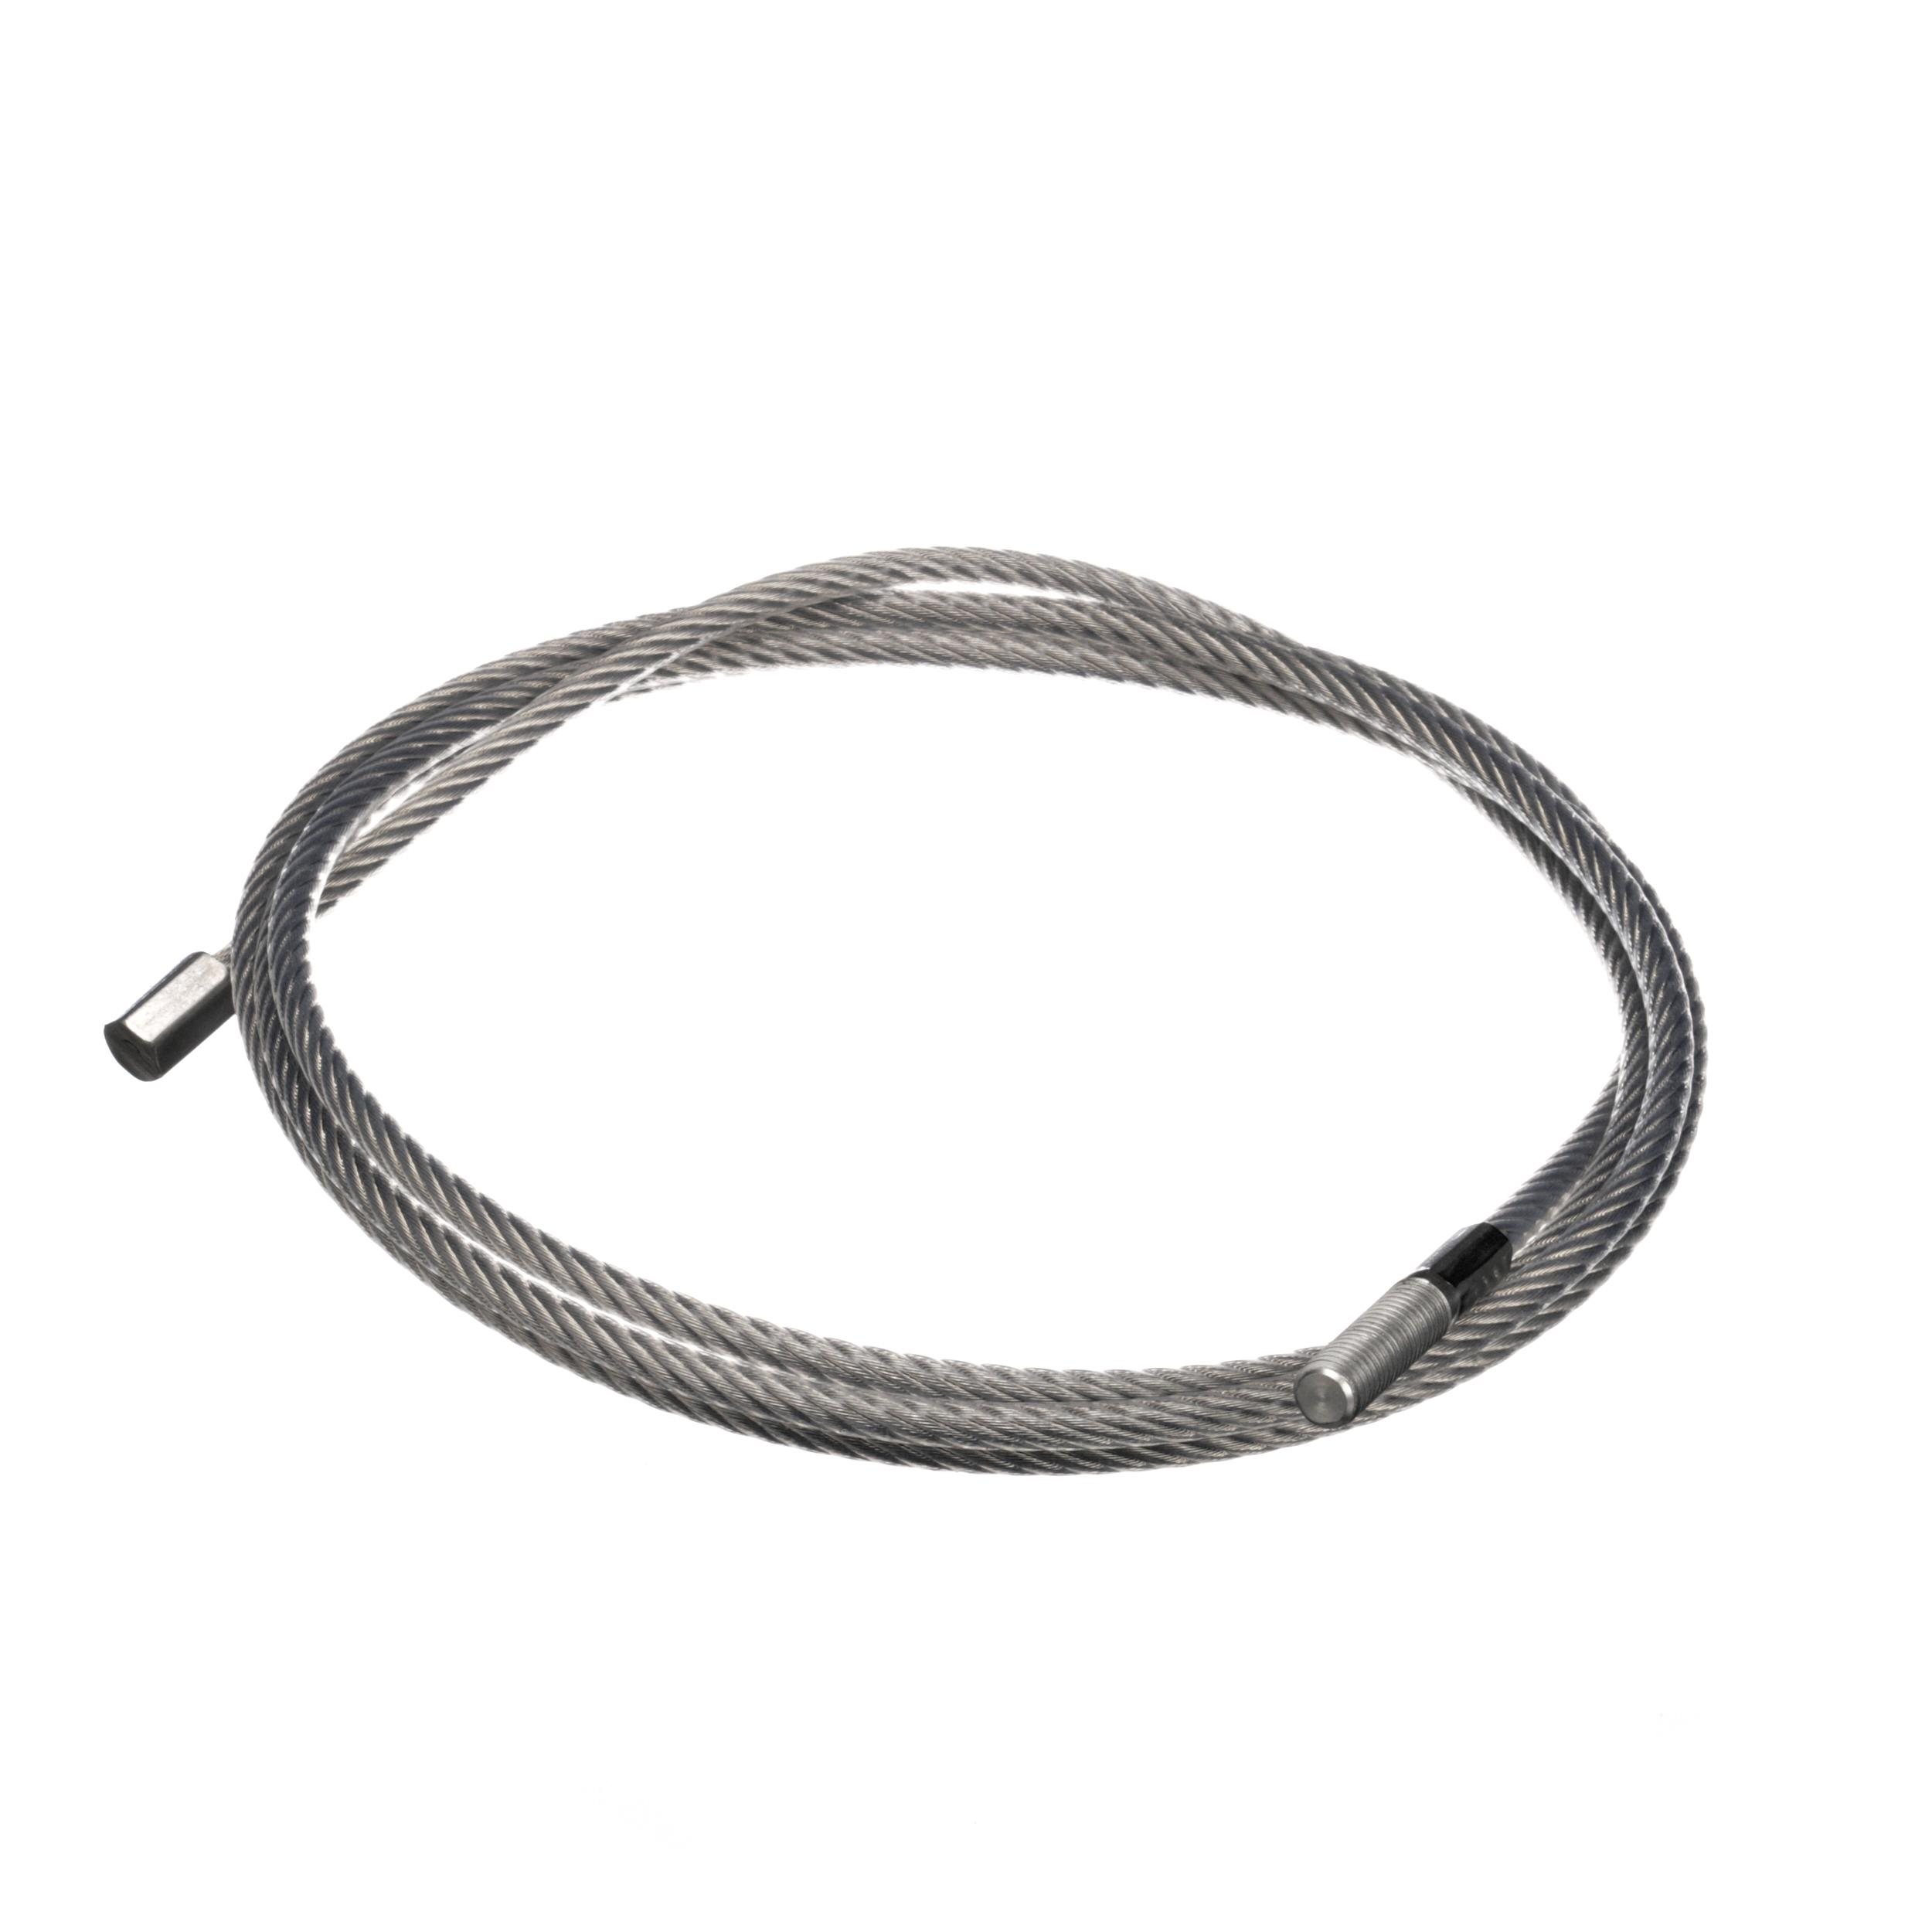 GROEN CABLE ASSEMBLY